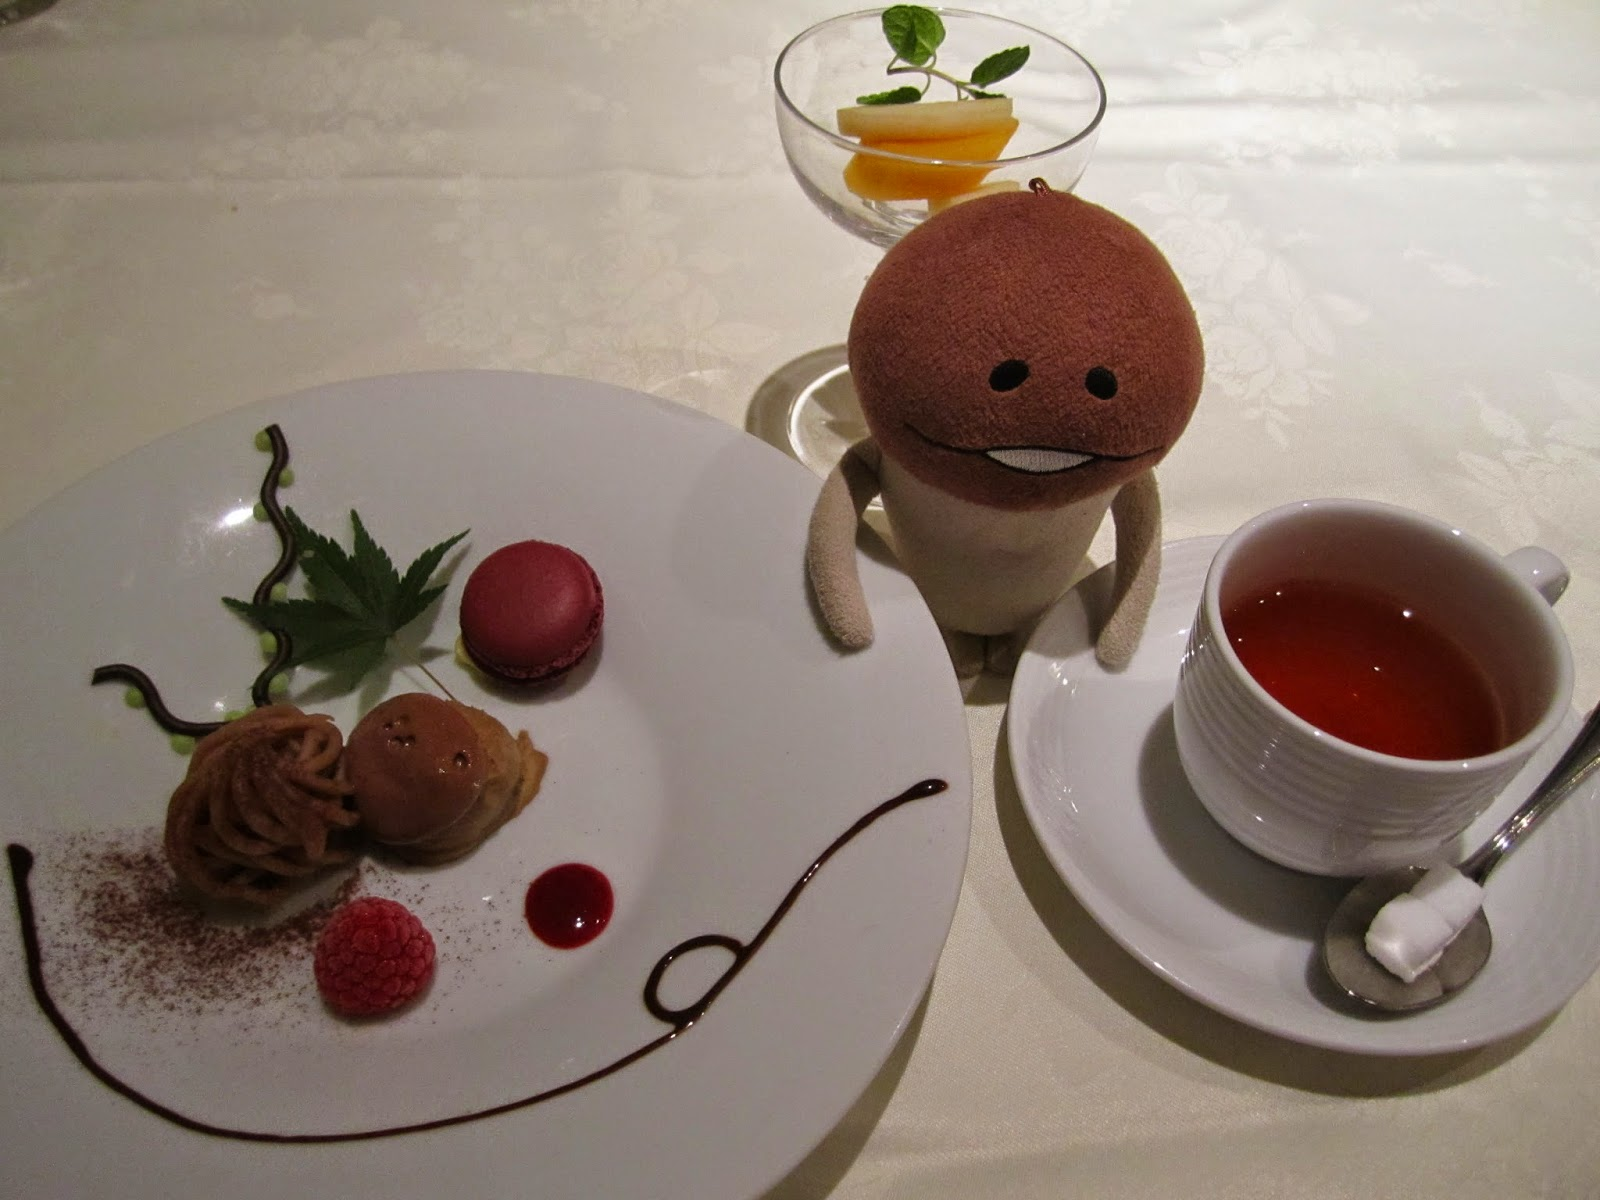 Hotel Neuschloss Otaru Blau Kuste mont blanc, coffee ice cream, and fruits